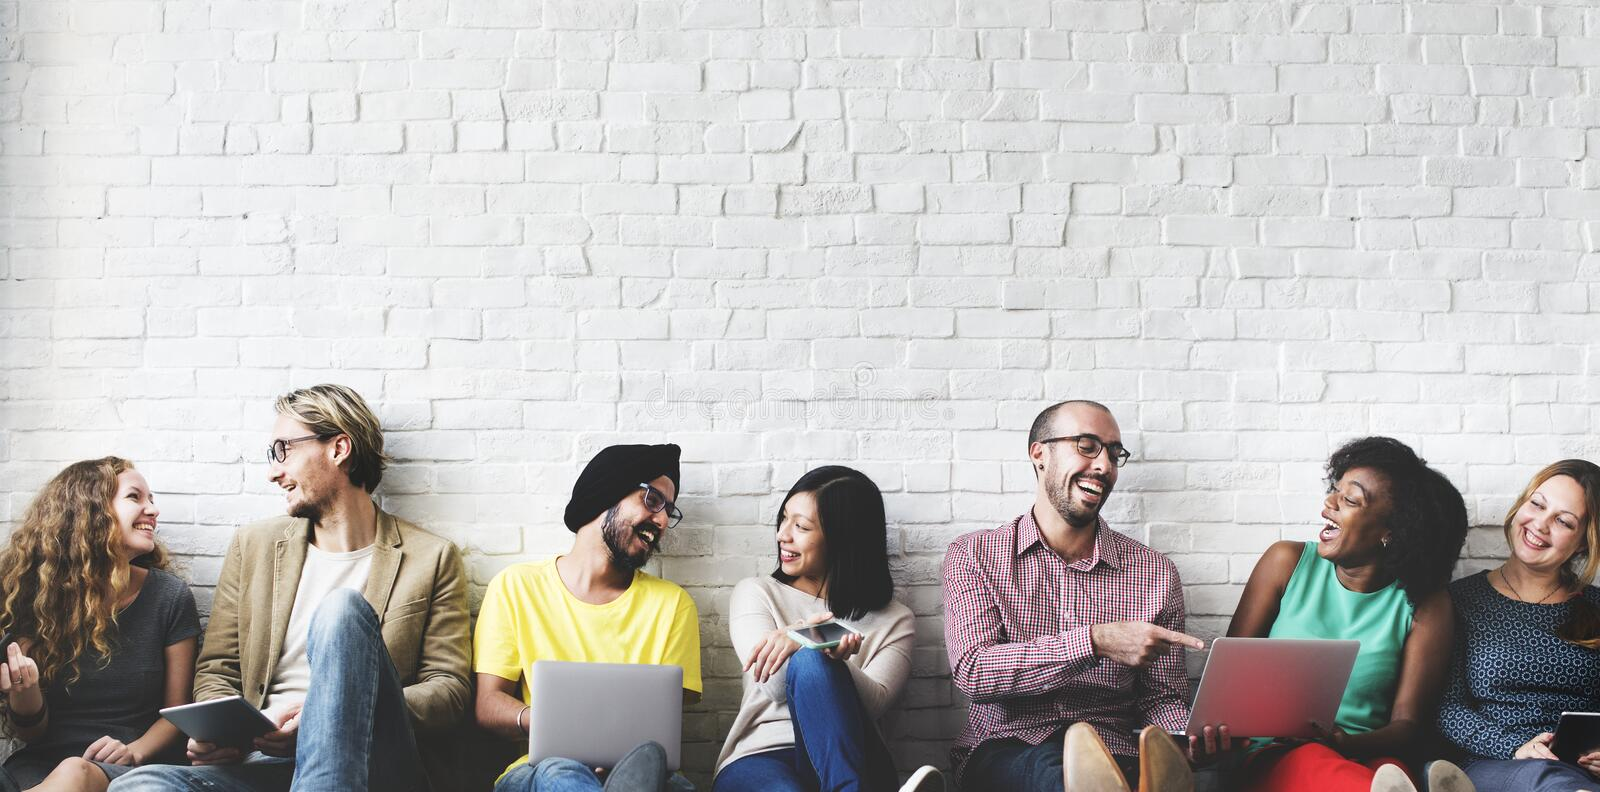 Download Digital Connection Technology Networking Team Concept Stock Image - Image of ethnicity, devices: 65007729